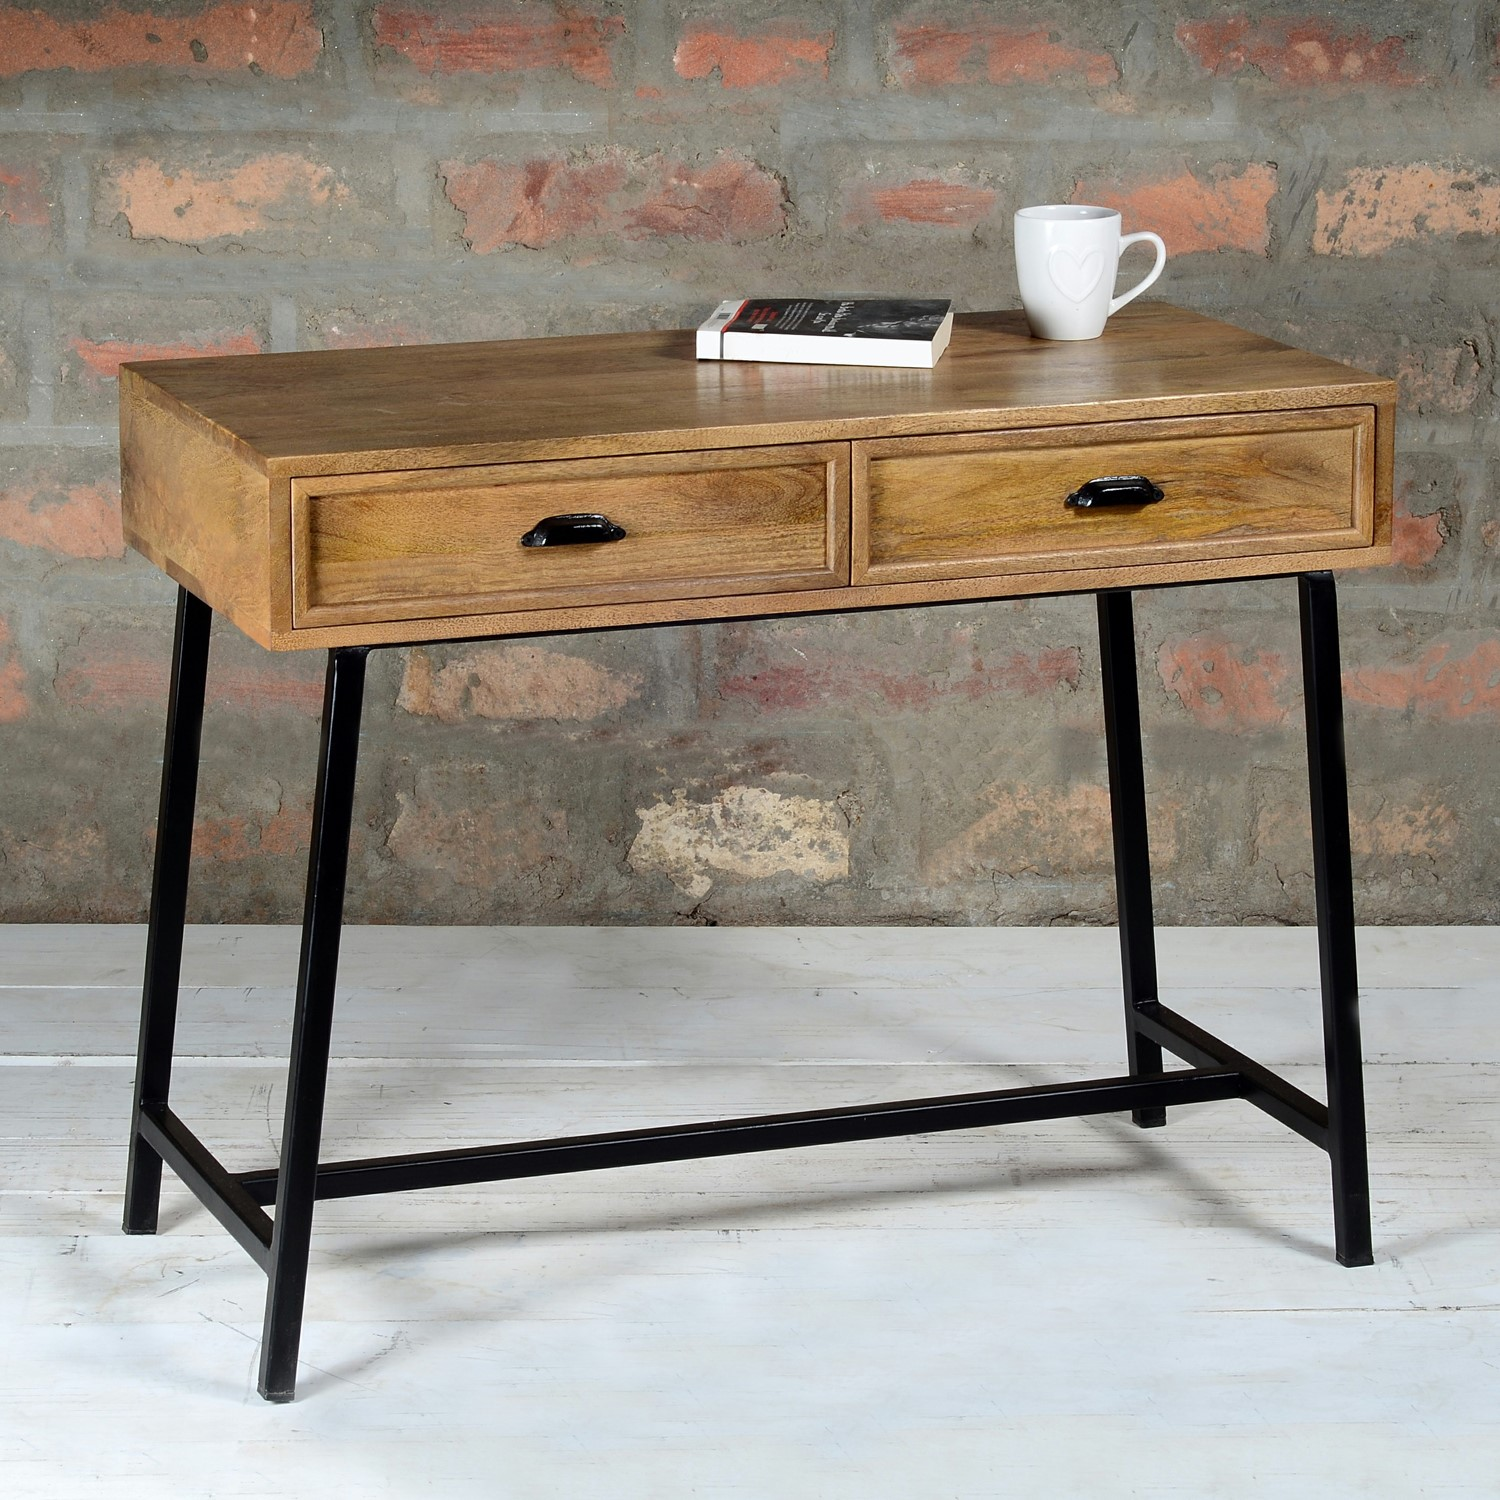 Rustic Console Table with Drawers in Solid Wood & Black - Suri